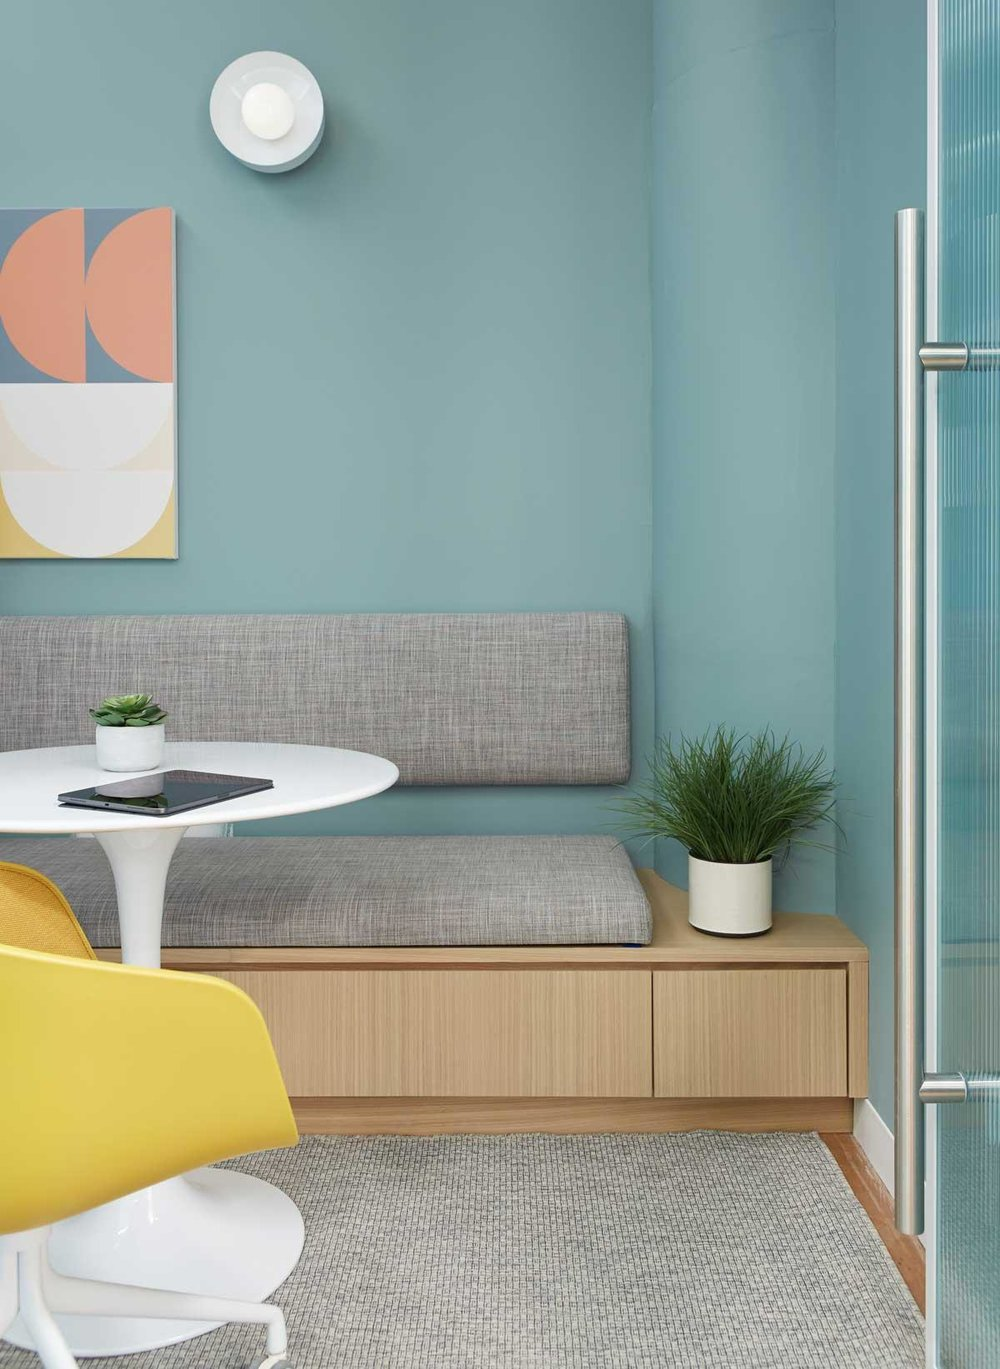 Parsley Health Consultation Room designed by 2L Engineering